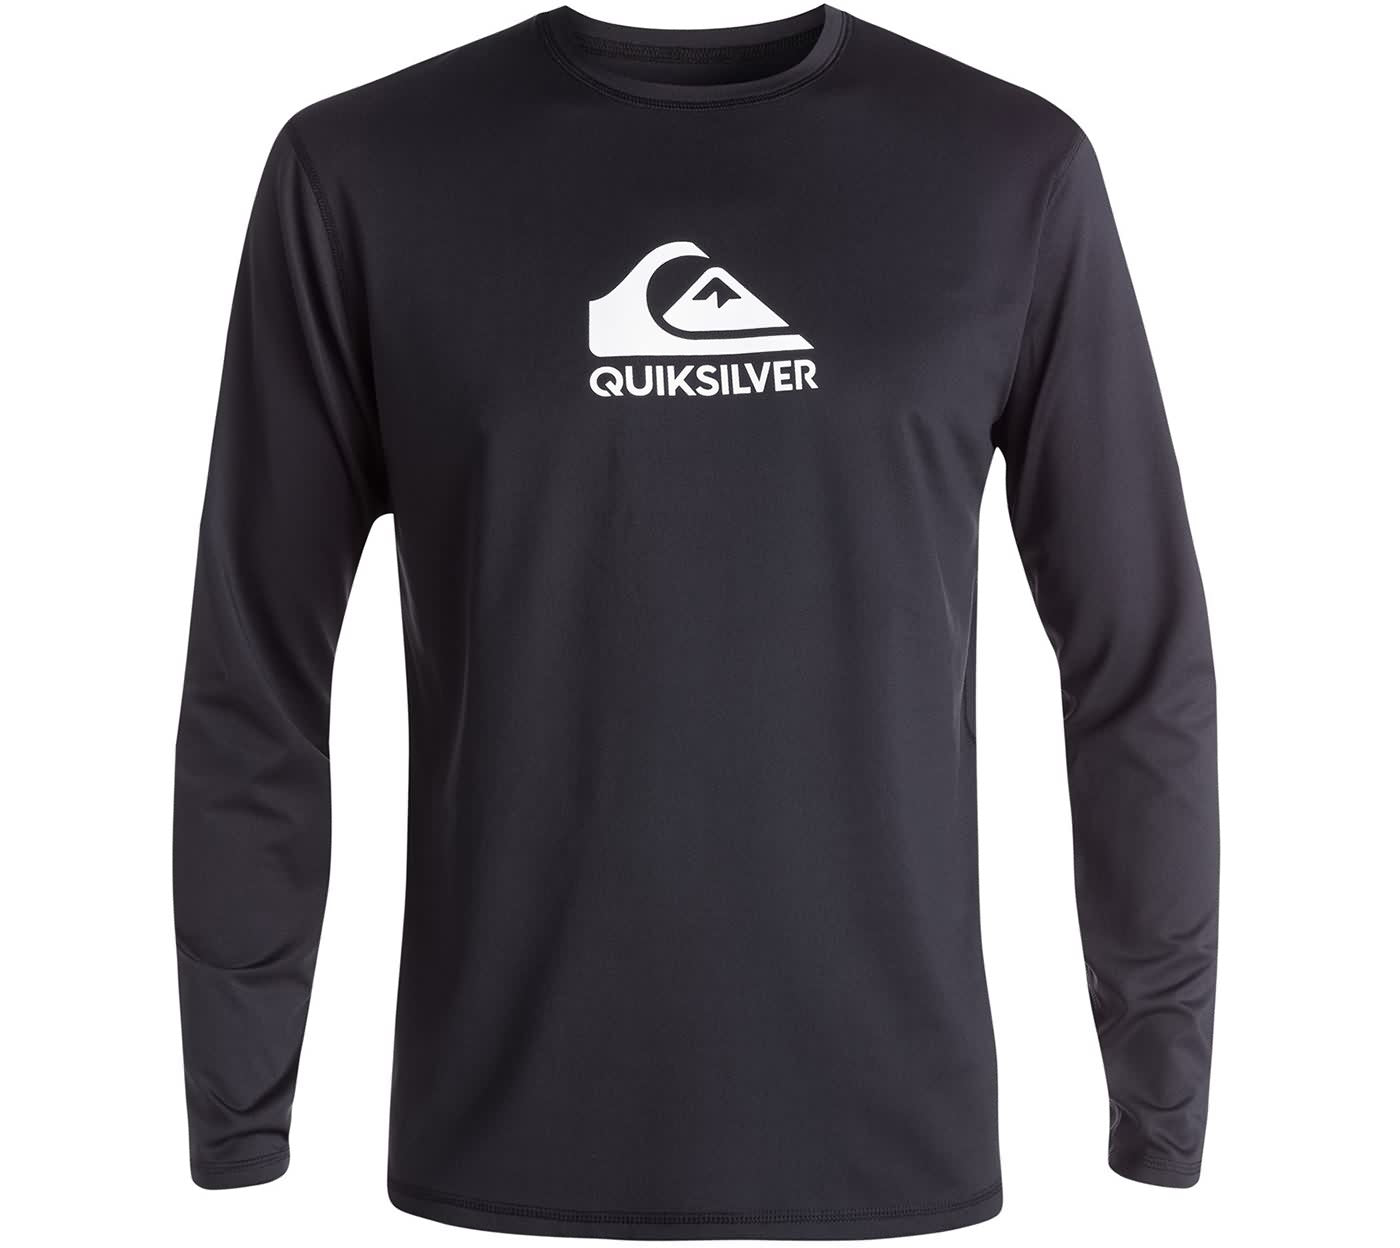 Quiksilver Surf Fall 2017 Mens Surfing Rashguards Collection